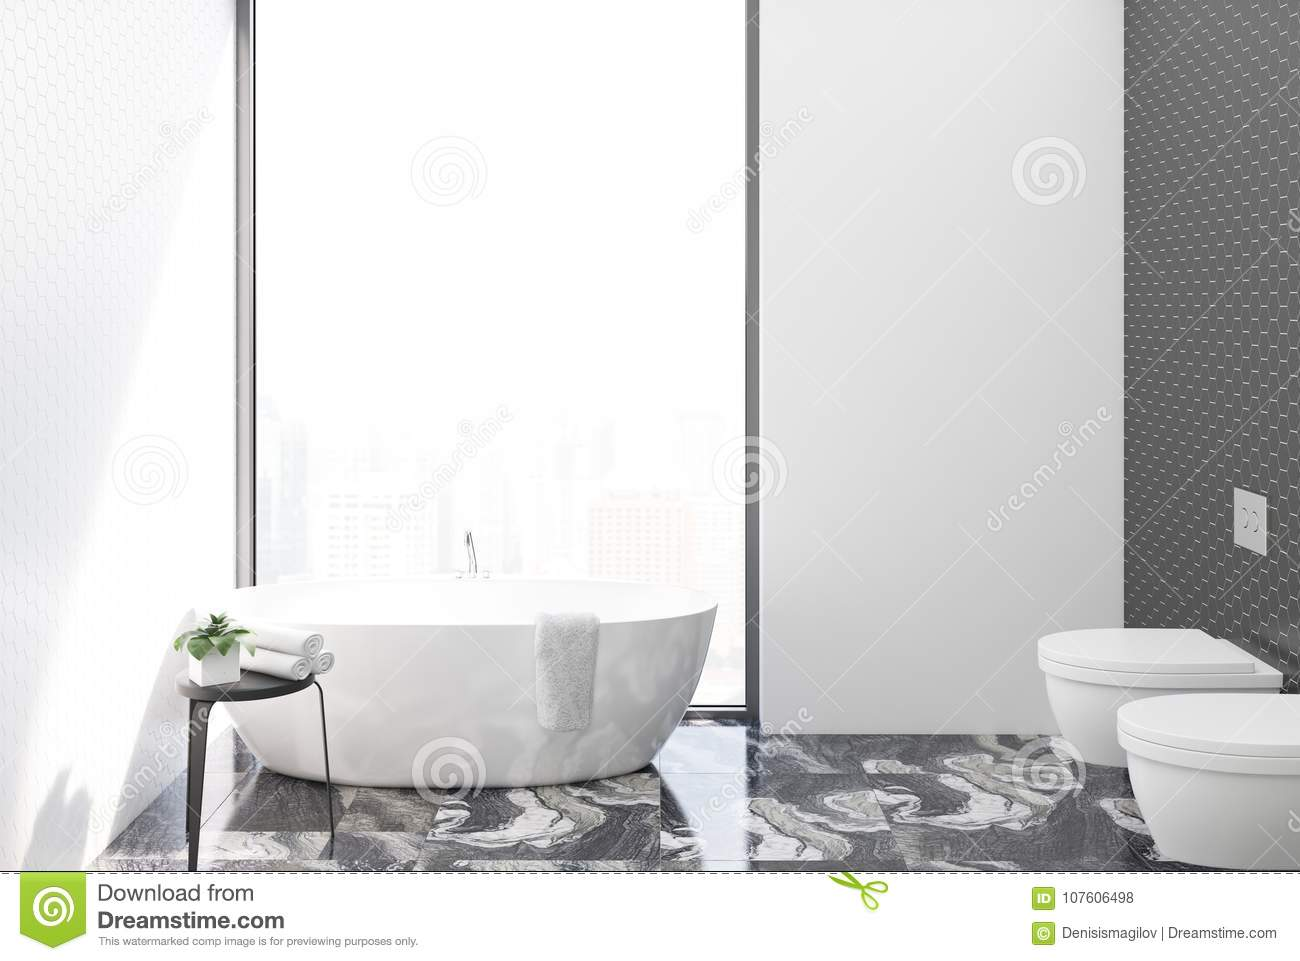 White Tiled Bathroom And Toilet Stock Illustration - Illustration of ...